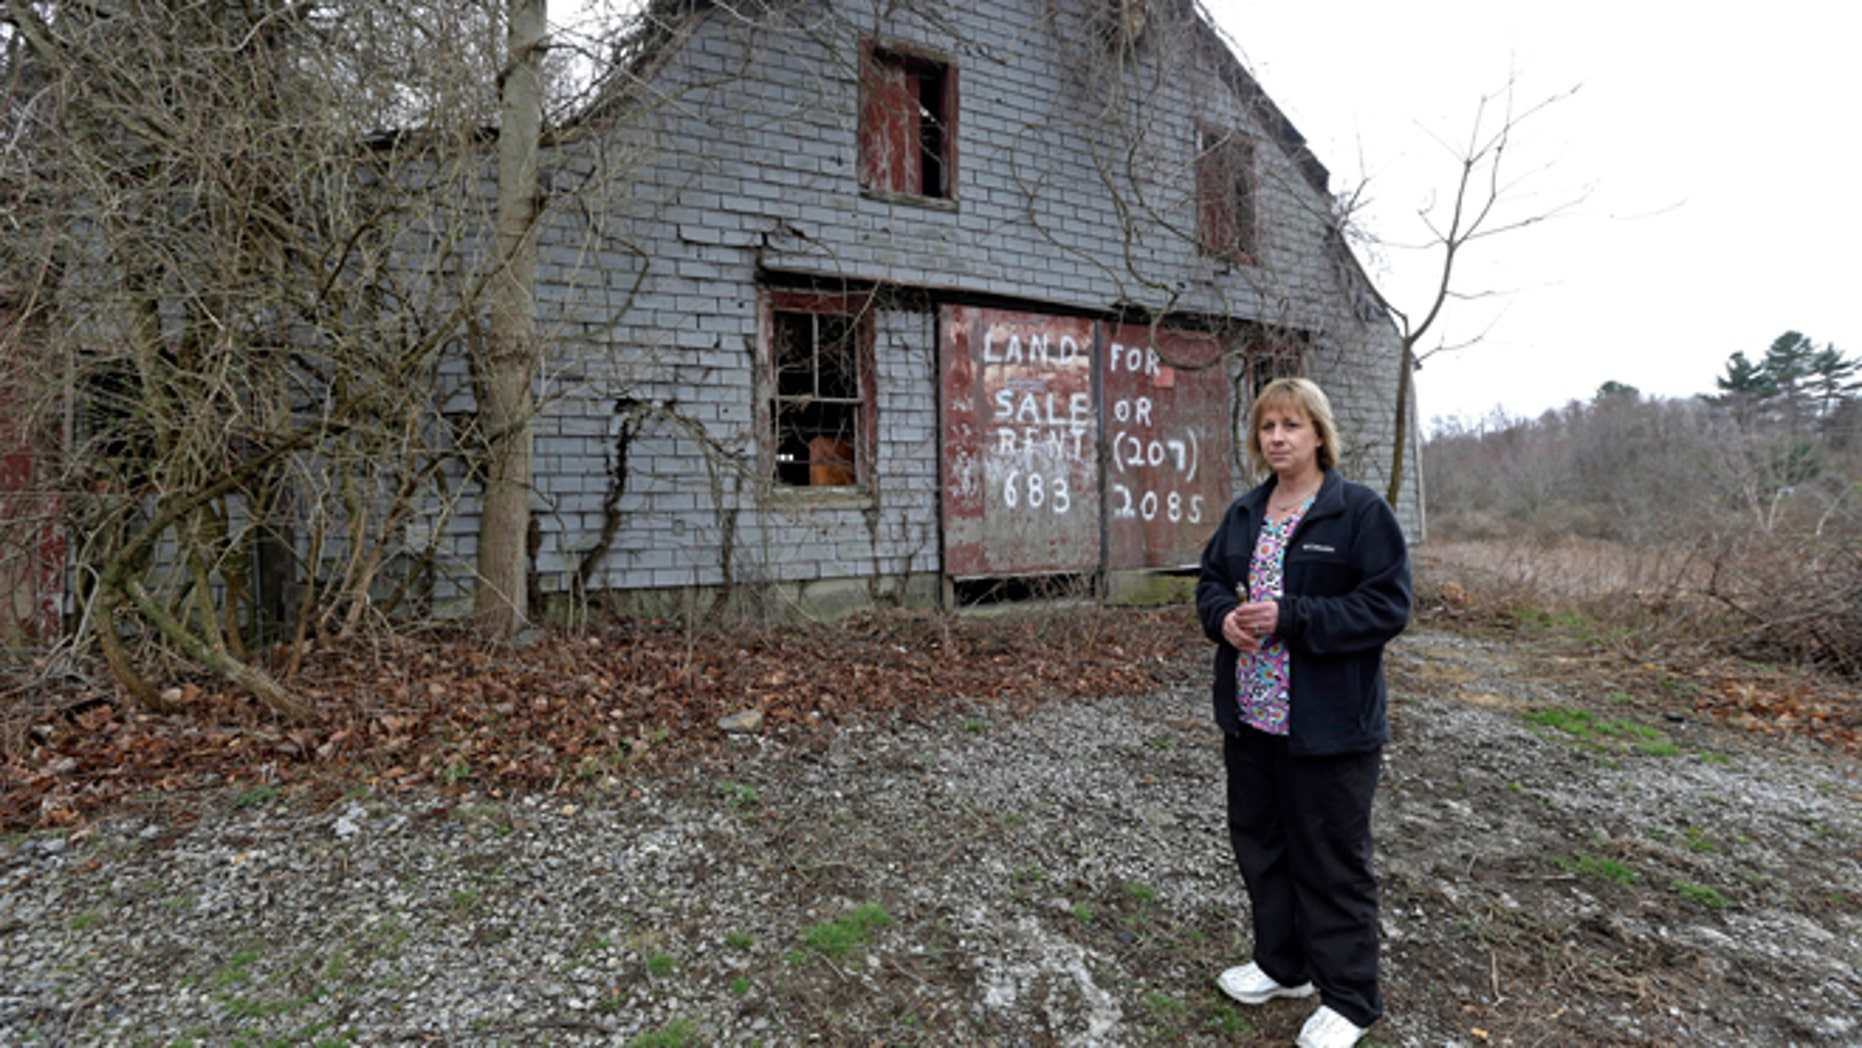 In this April 12, 2016 file photo Desiree Moninski, stands on land located across from her house in Dudley, Mass., which is the site of a proposed Muslim cemetery.